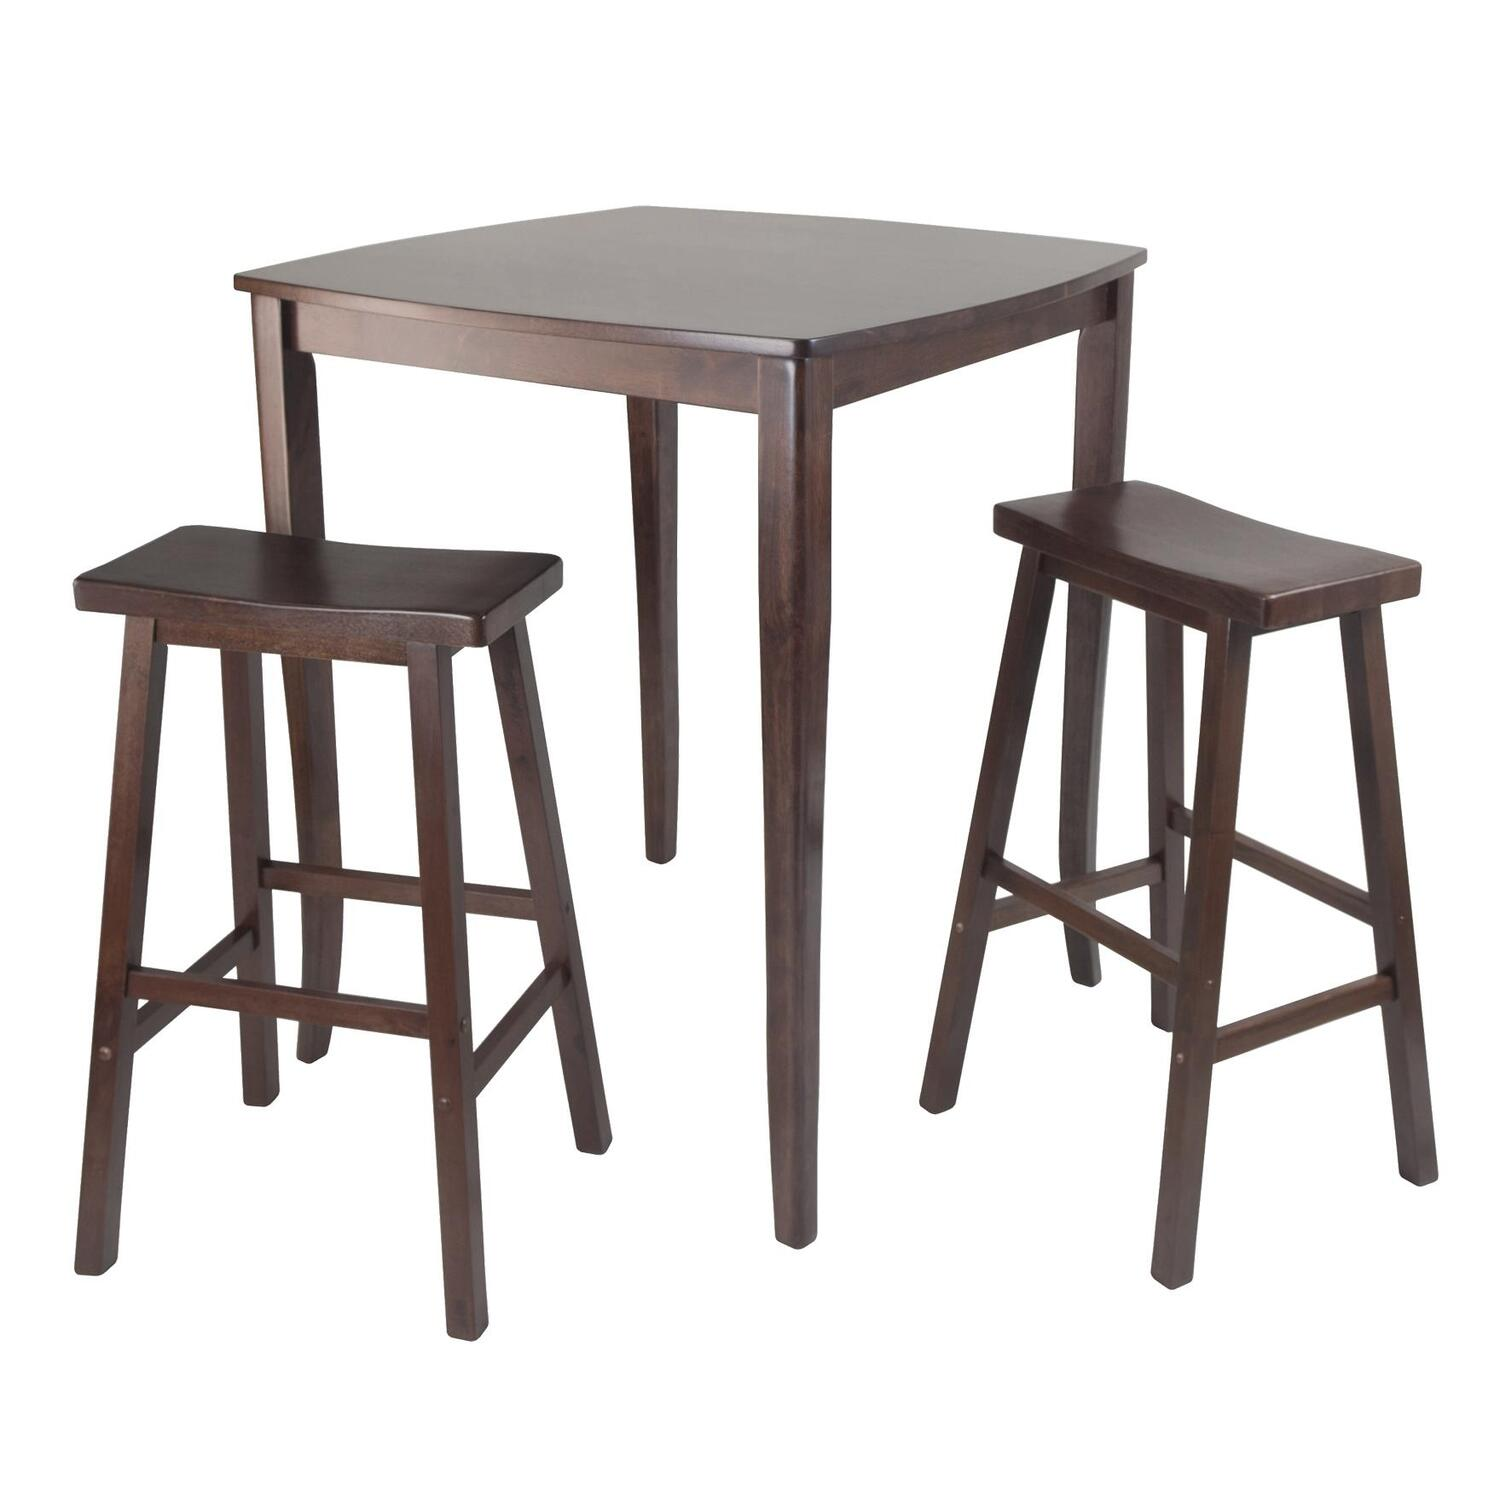 Fabulous Winsome Wood 3Pc Inglewood High Pub Dining Table With Saddle Stool Onthecornerstone Fun Painted Chair Ideas Images Onthecornerstoneorg